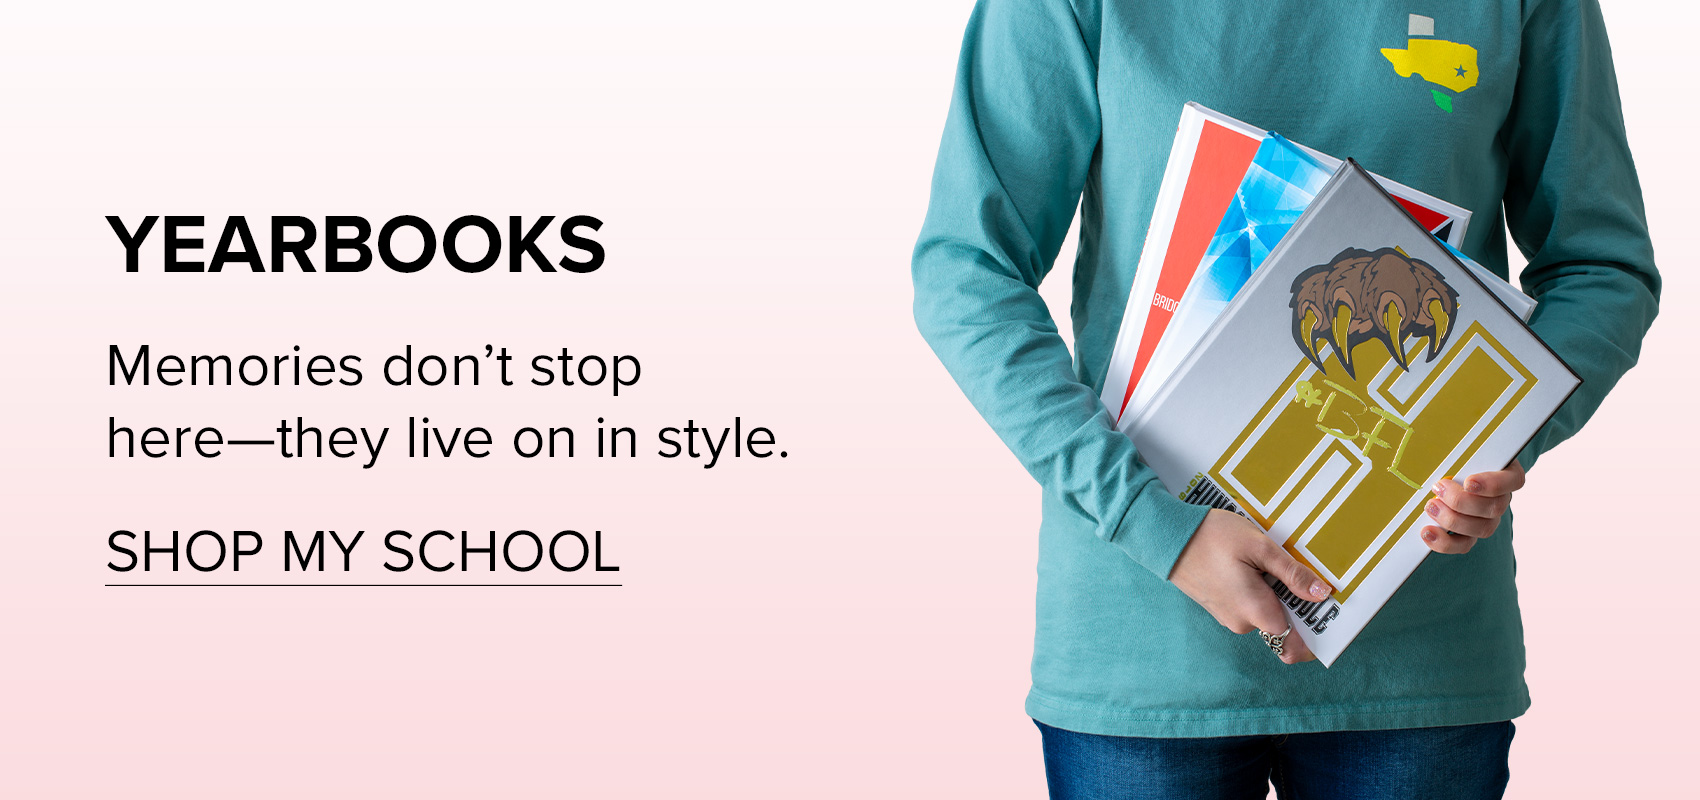 "a girl holding three yearbooks, of different styles; with text beside the image that says ""yearbooks; memories don't stop here, they live on in style."" and underneathe that text, it says ""shop my school"""